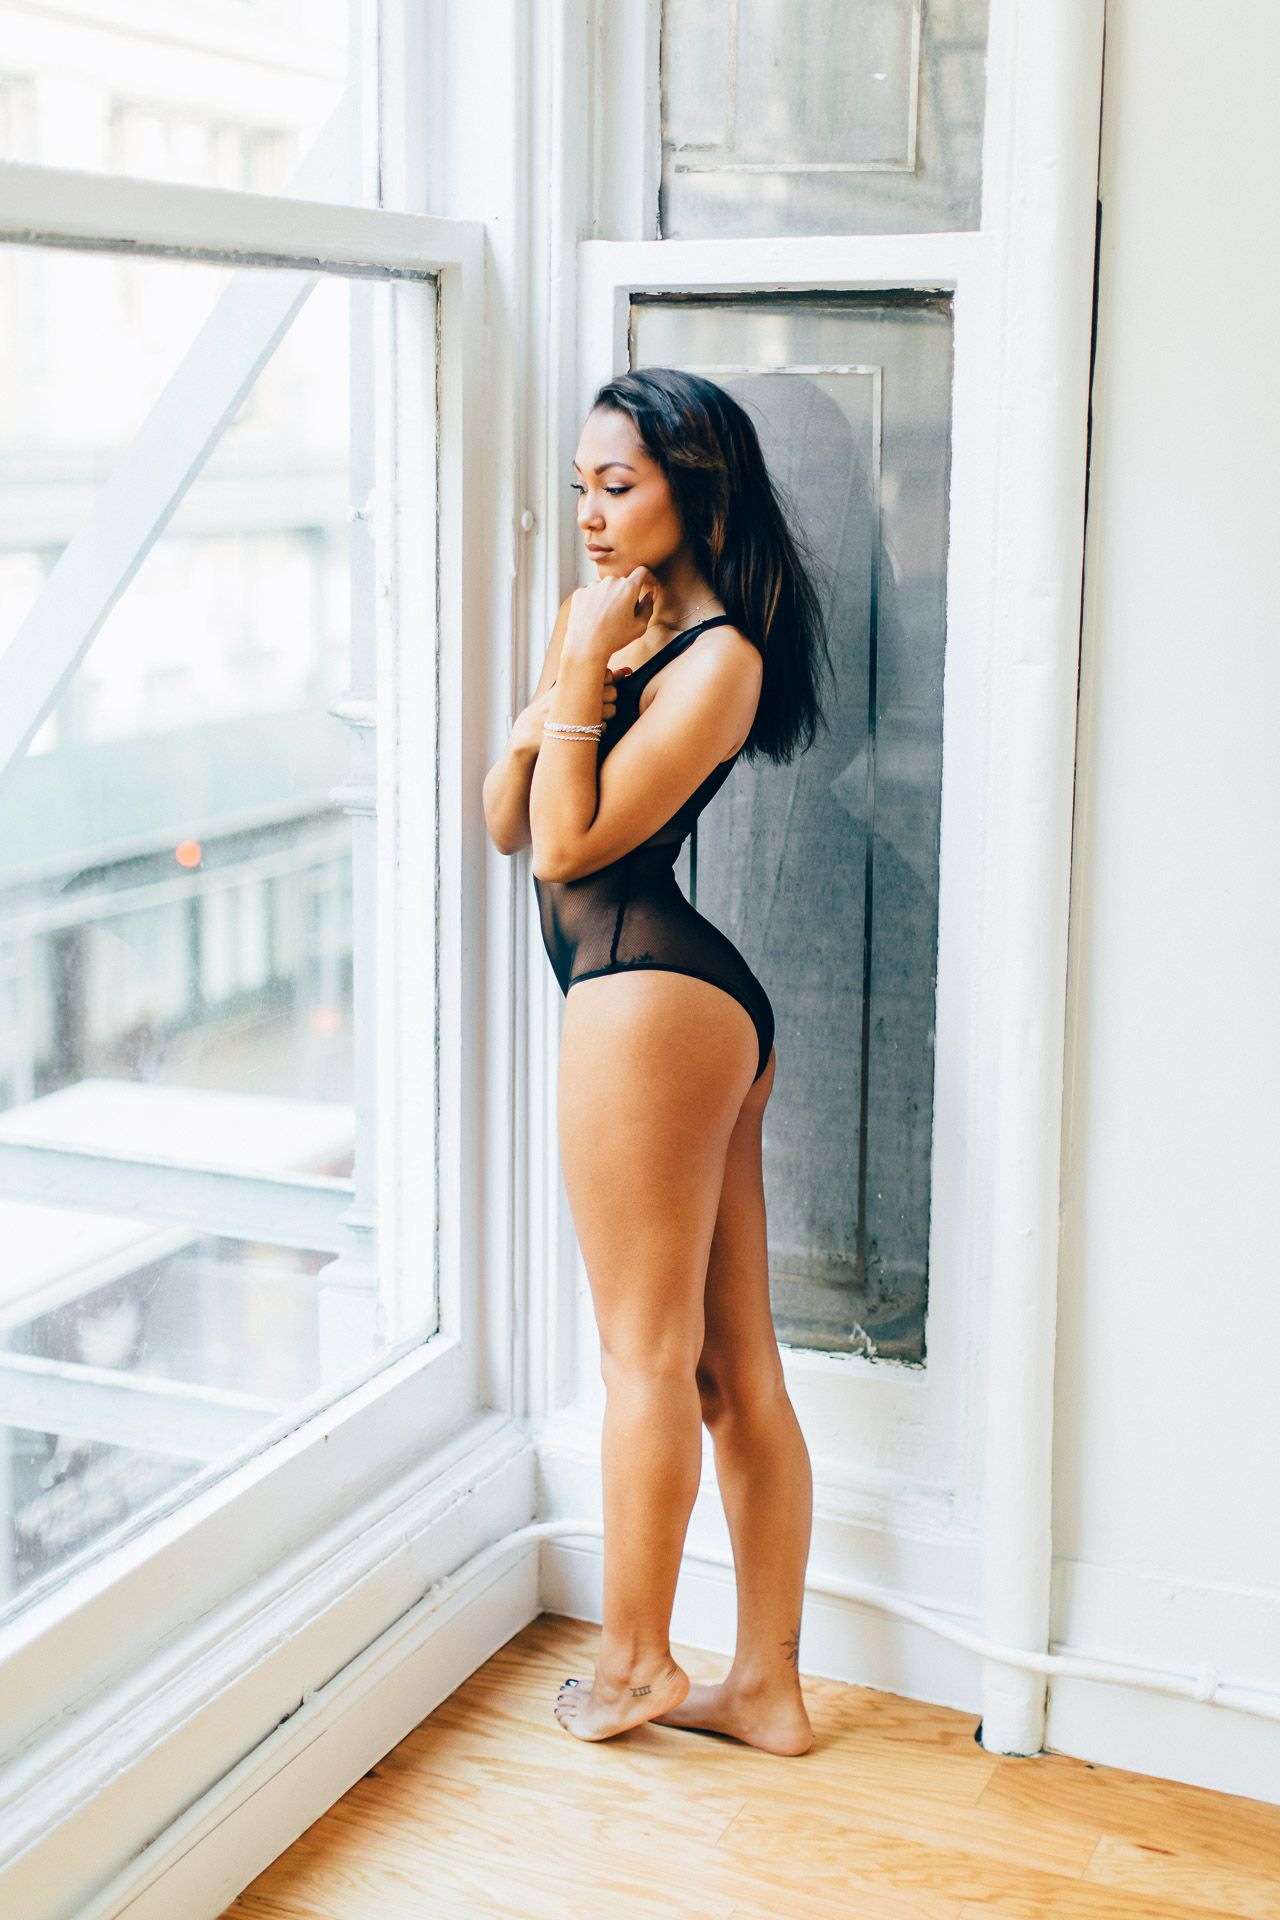 Parker mckenna posey nudes — pic 15